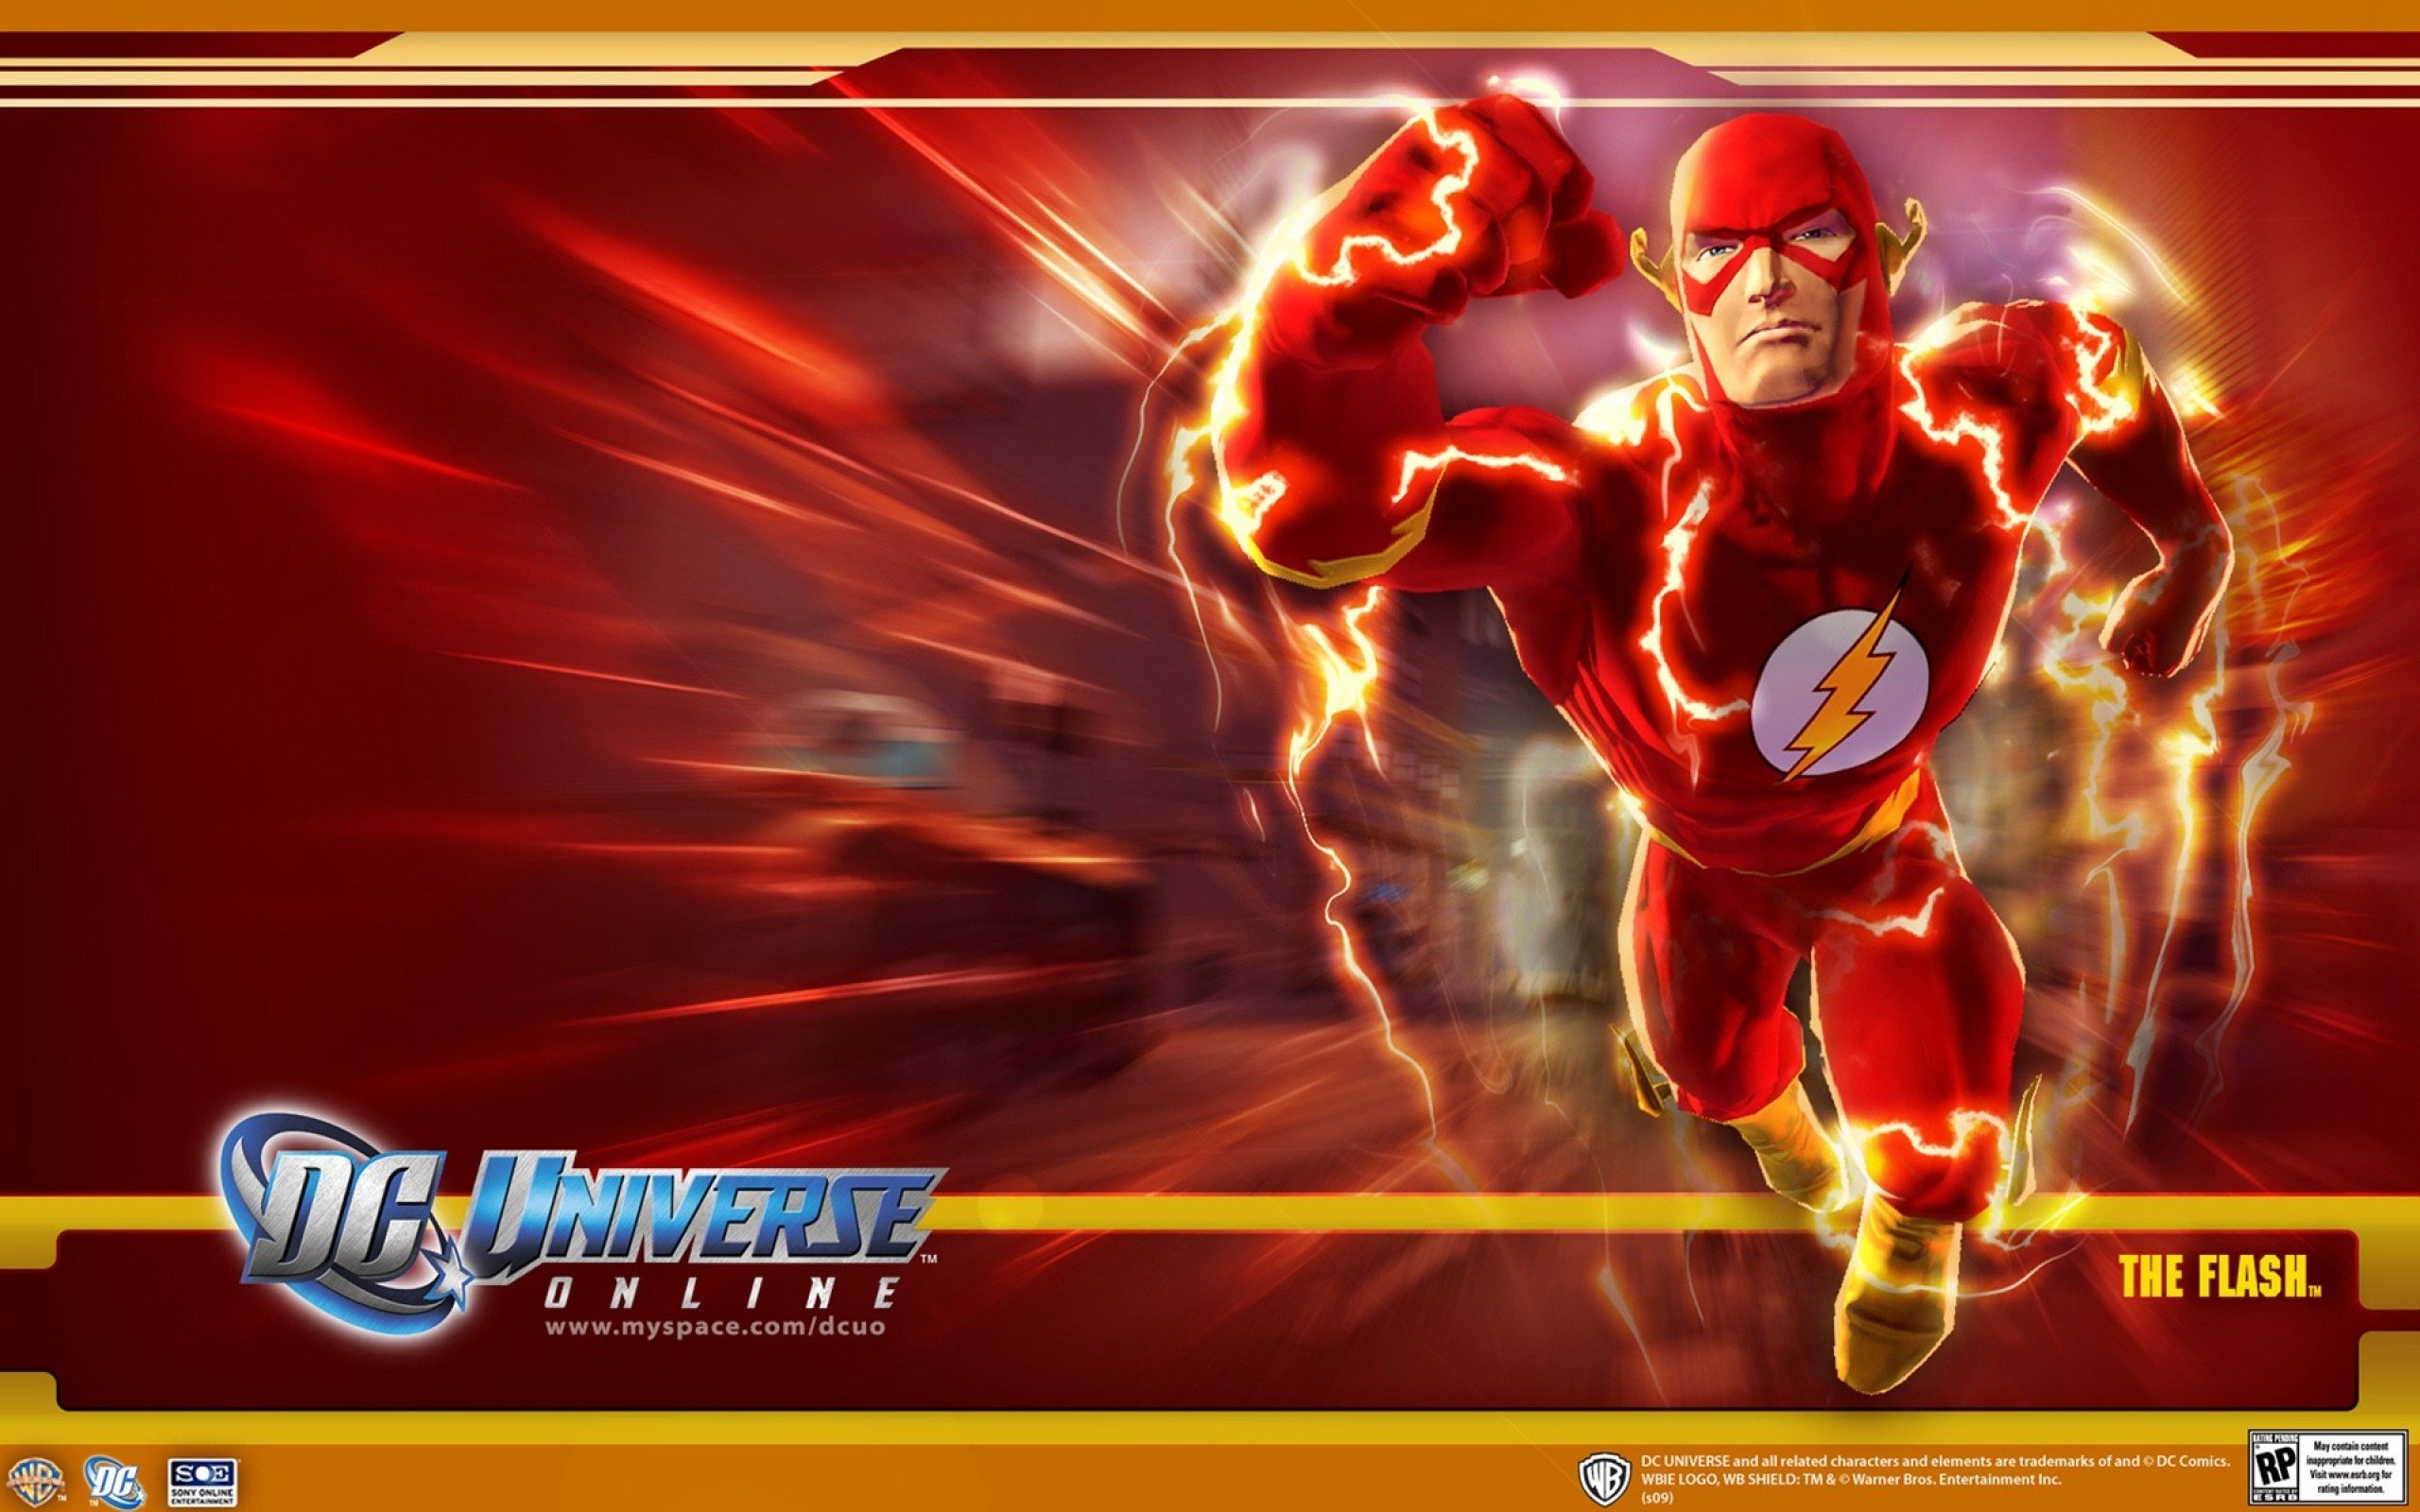 Download hd 2560x1600 DC Universe Online PC wallpaper ID:246880 for free